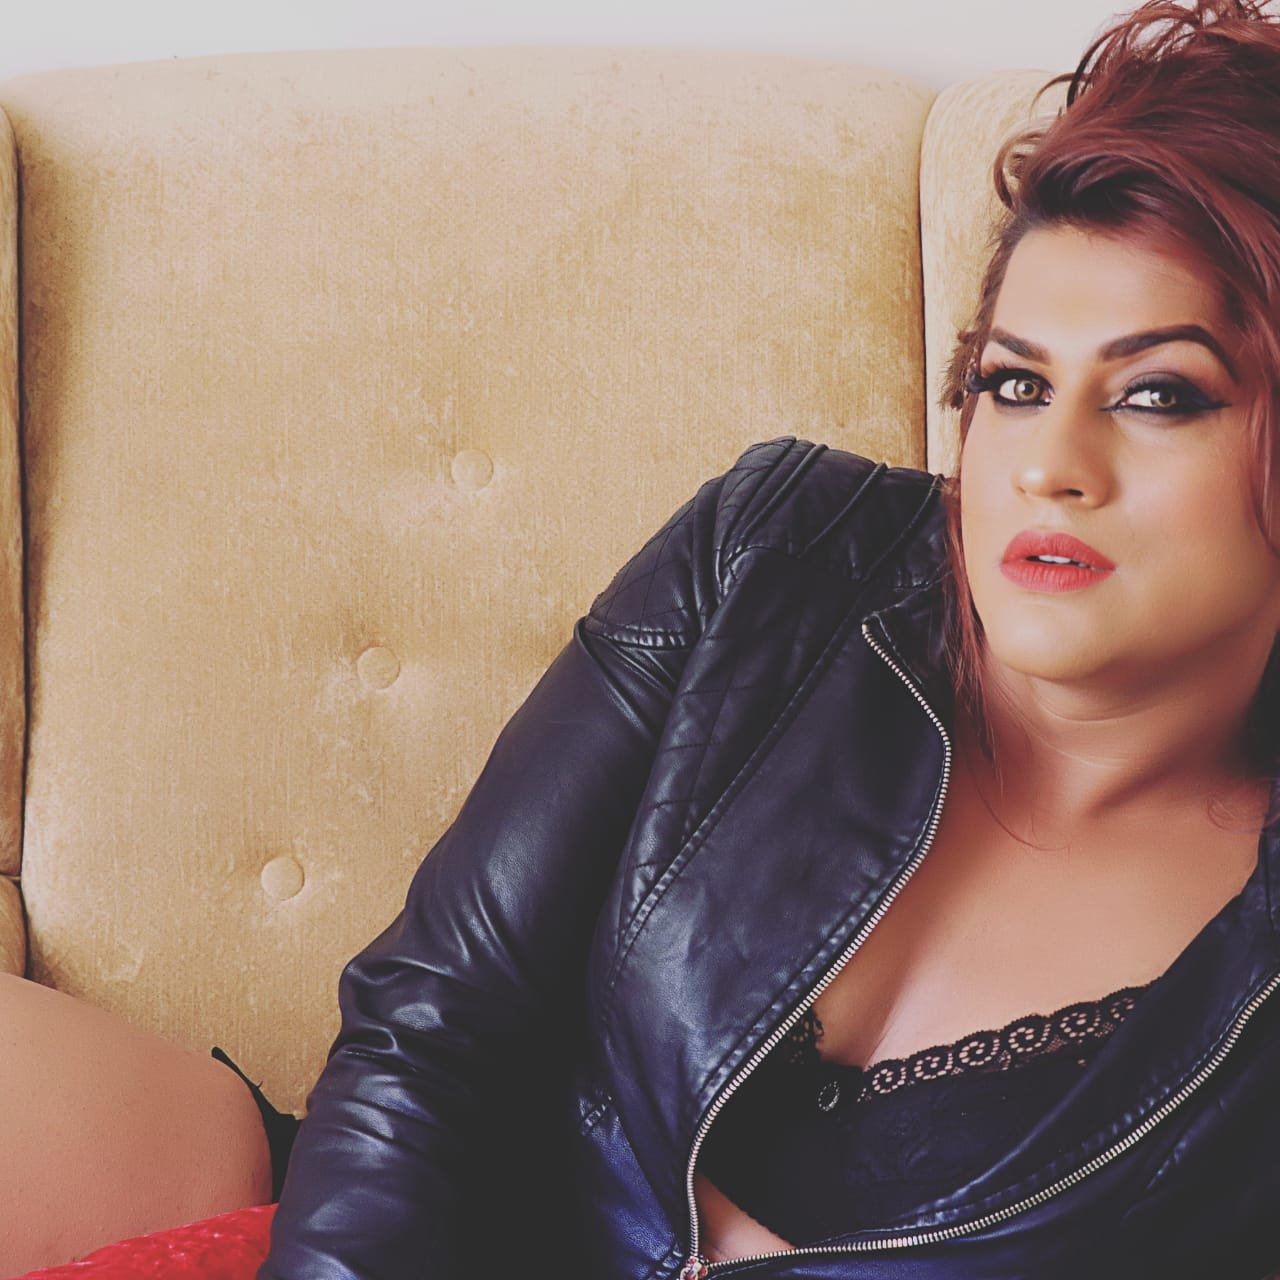 Bad Shemale kayya the shemale model, indian transsexual escort in ahmedabad